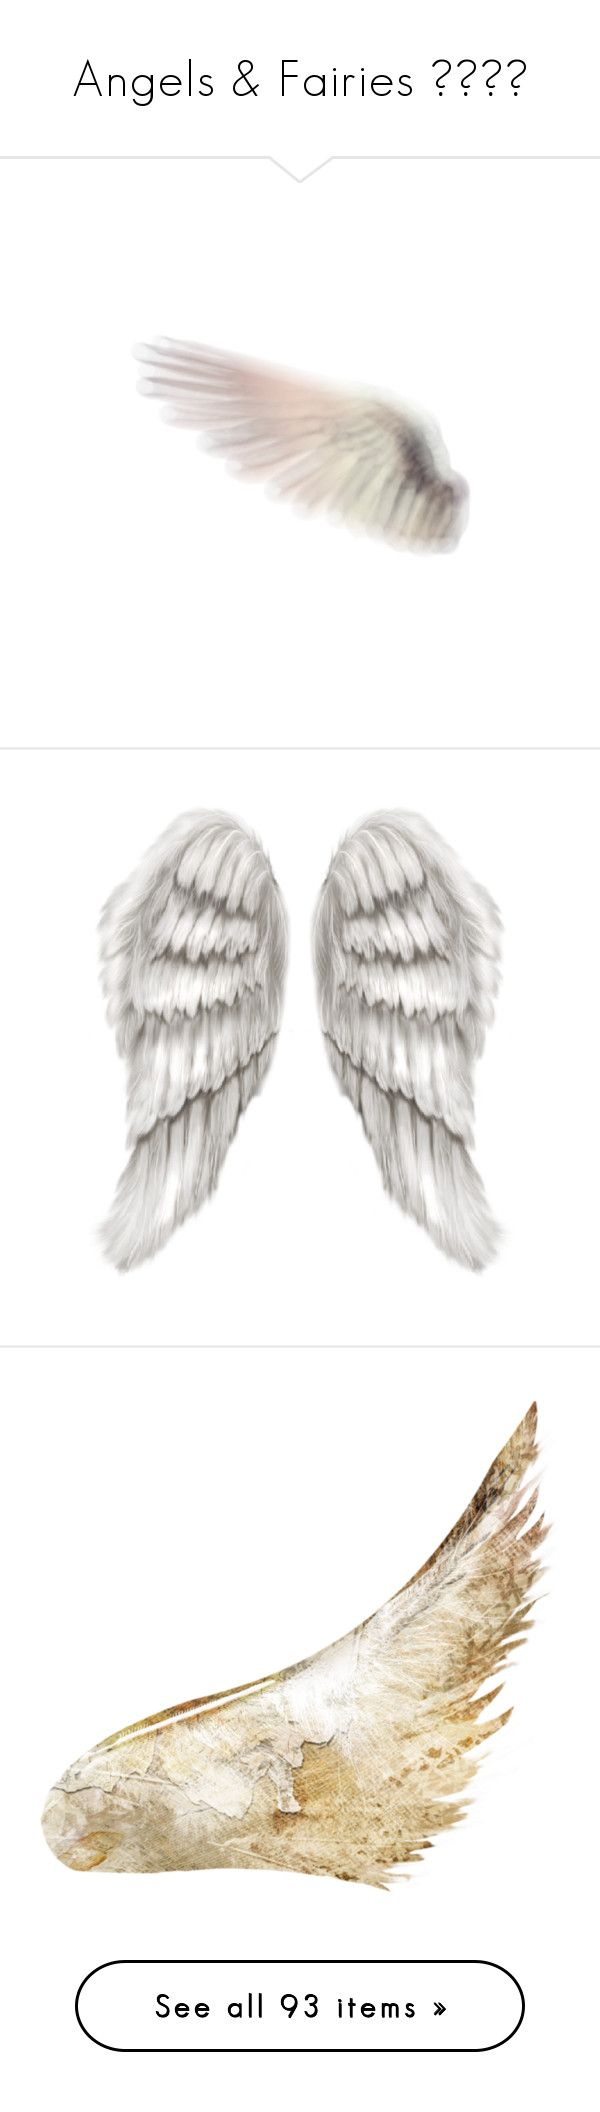 Angels fairies by mellie2cute liked on polyvore angels fairies by mellie2cute liked on polyvore featuring jeuxipadfo Image collections